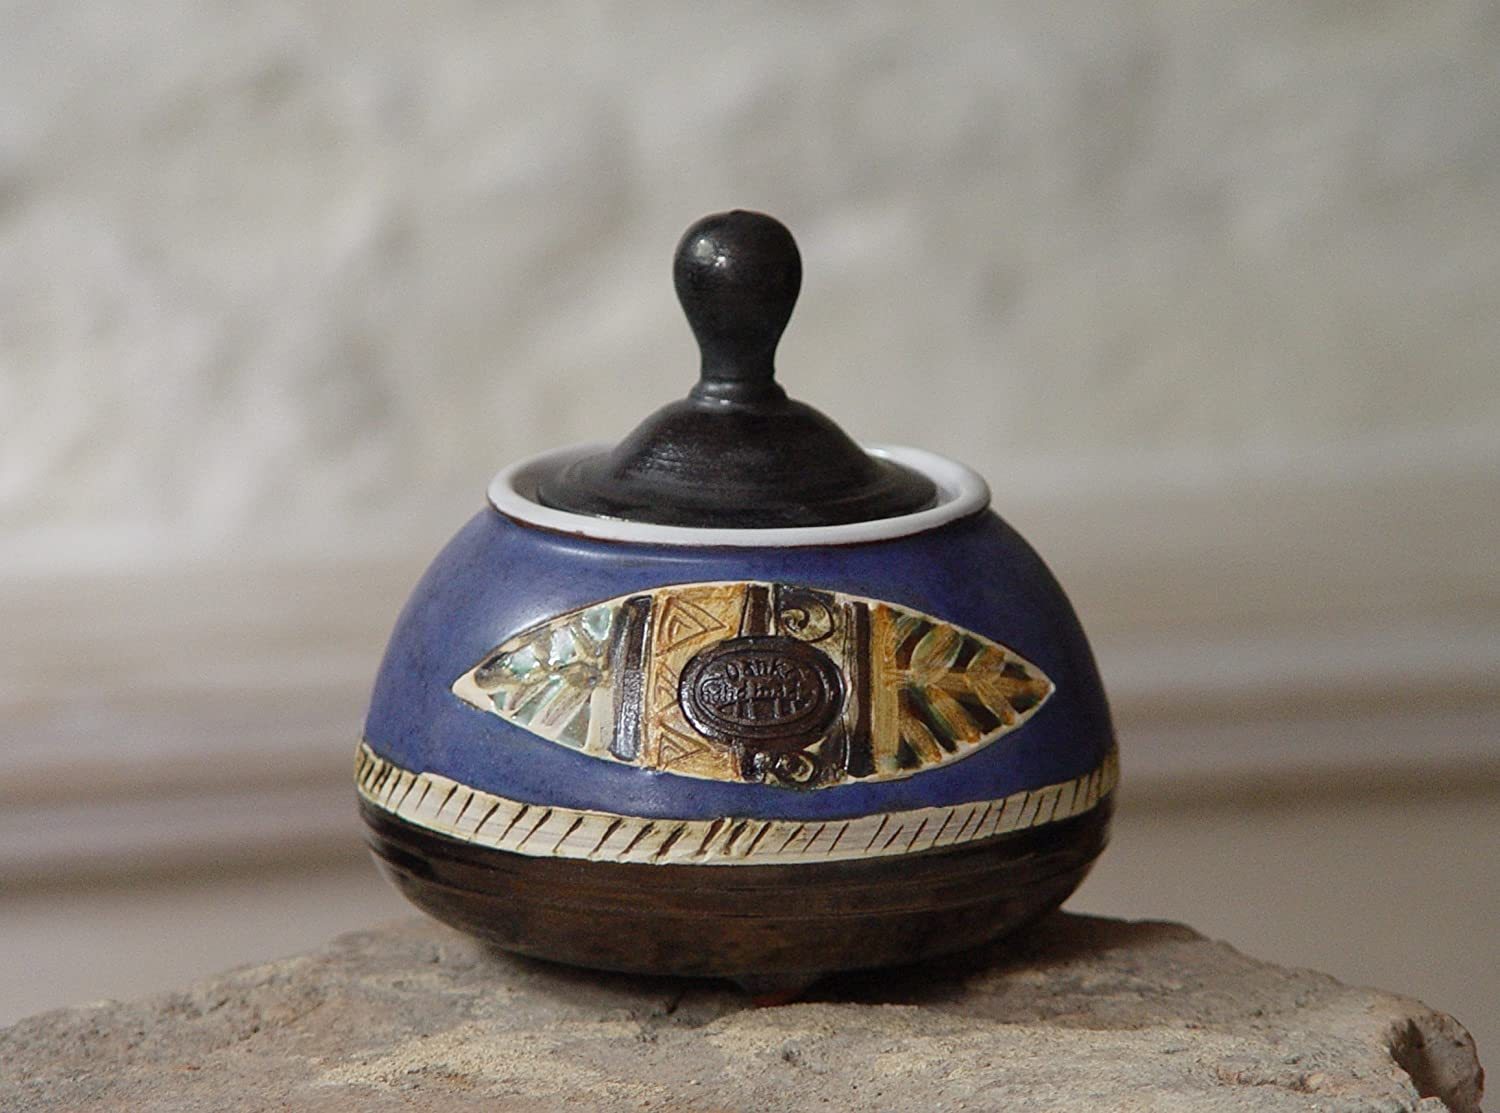 Blue Pottery Sugar Bowl - Handmade Ceramic Honey Jar - Covered Sugar Box - Tea Set Sugar Canister - Sugar Keeper - Colorful Countertop Decor